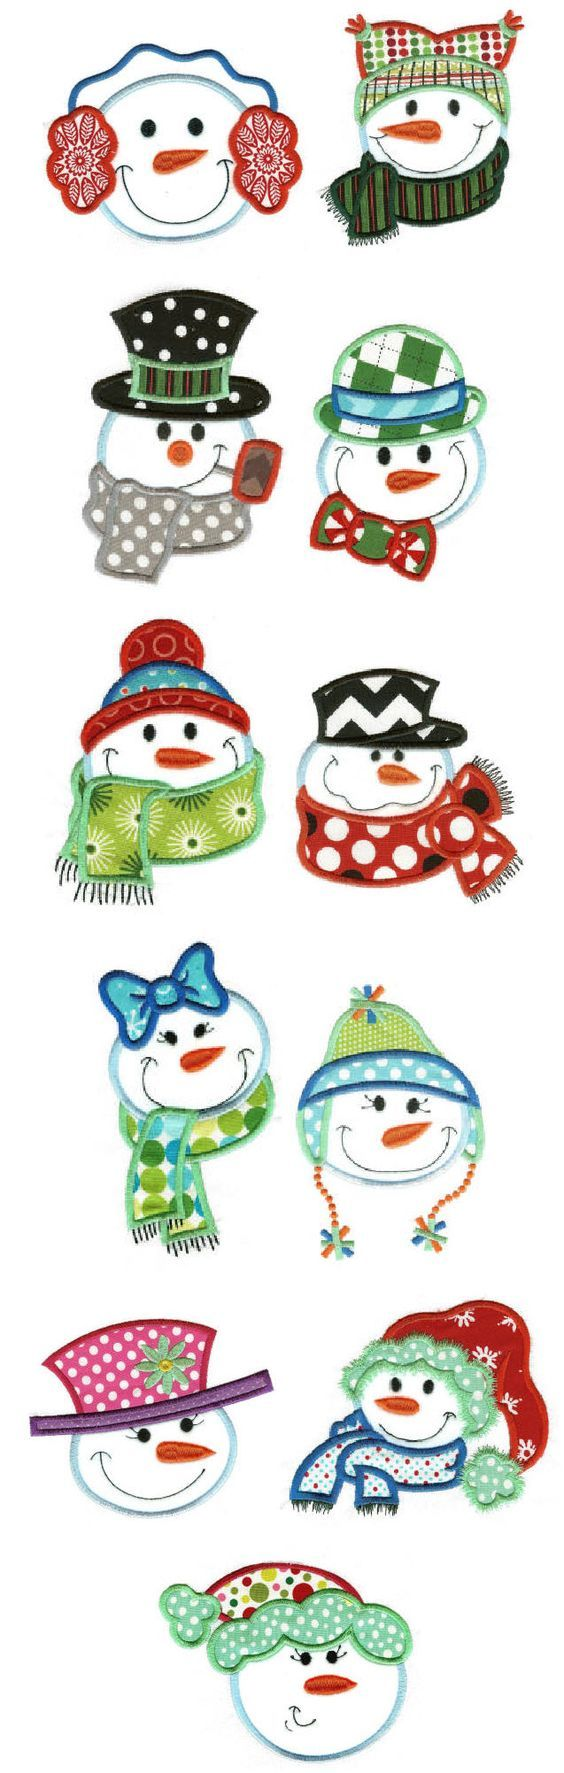 Embroidery | Applique Machine Embroidery Designs | Snow Buddies Applique: